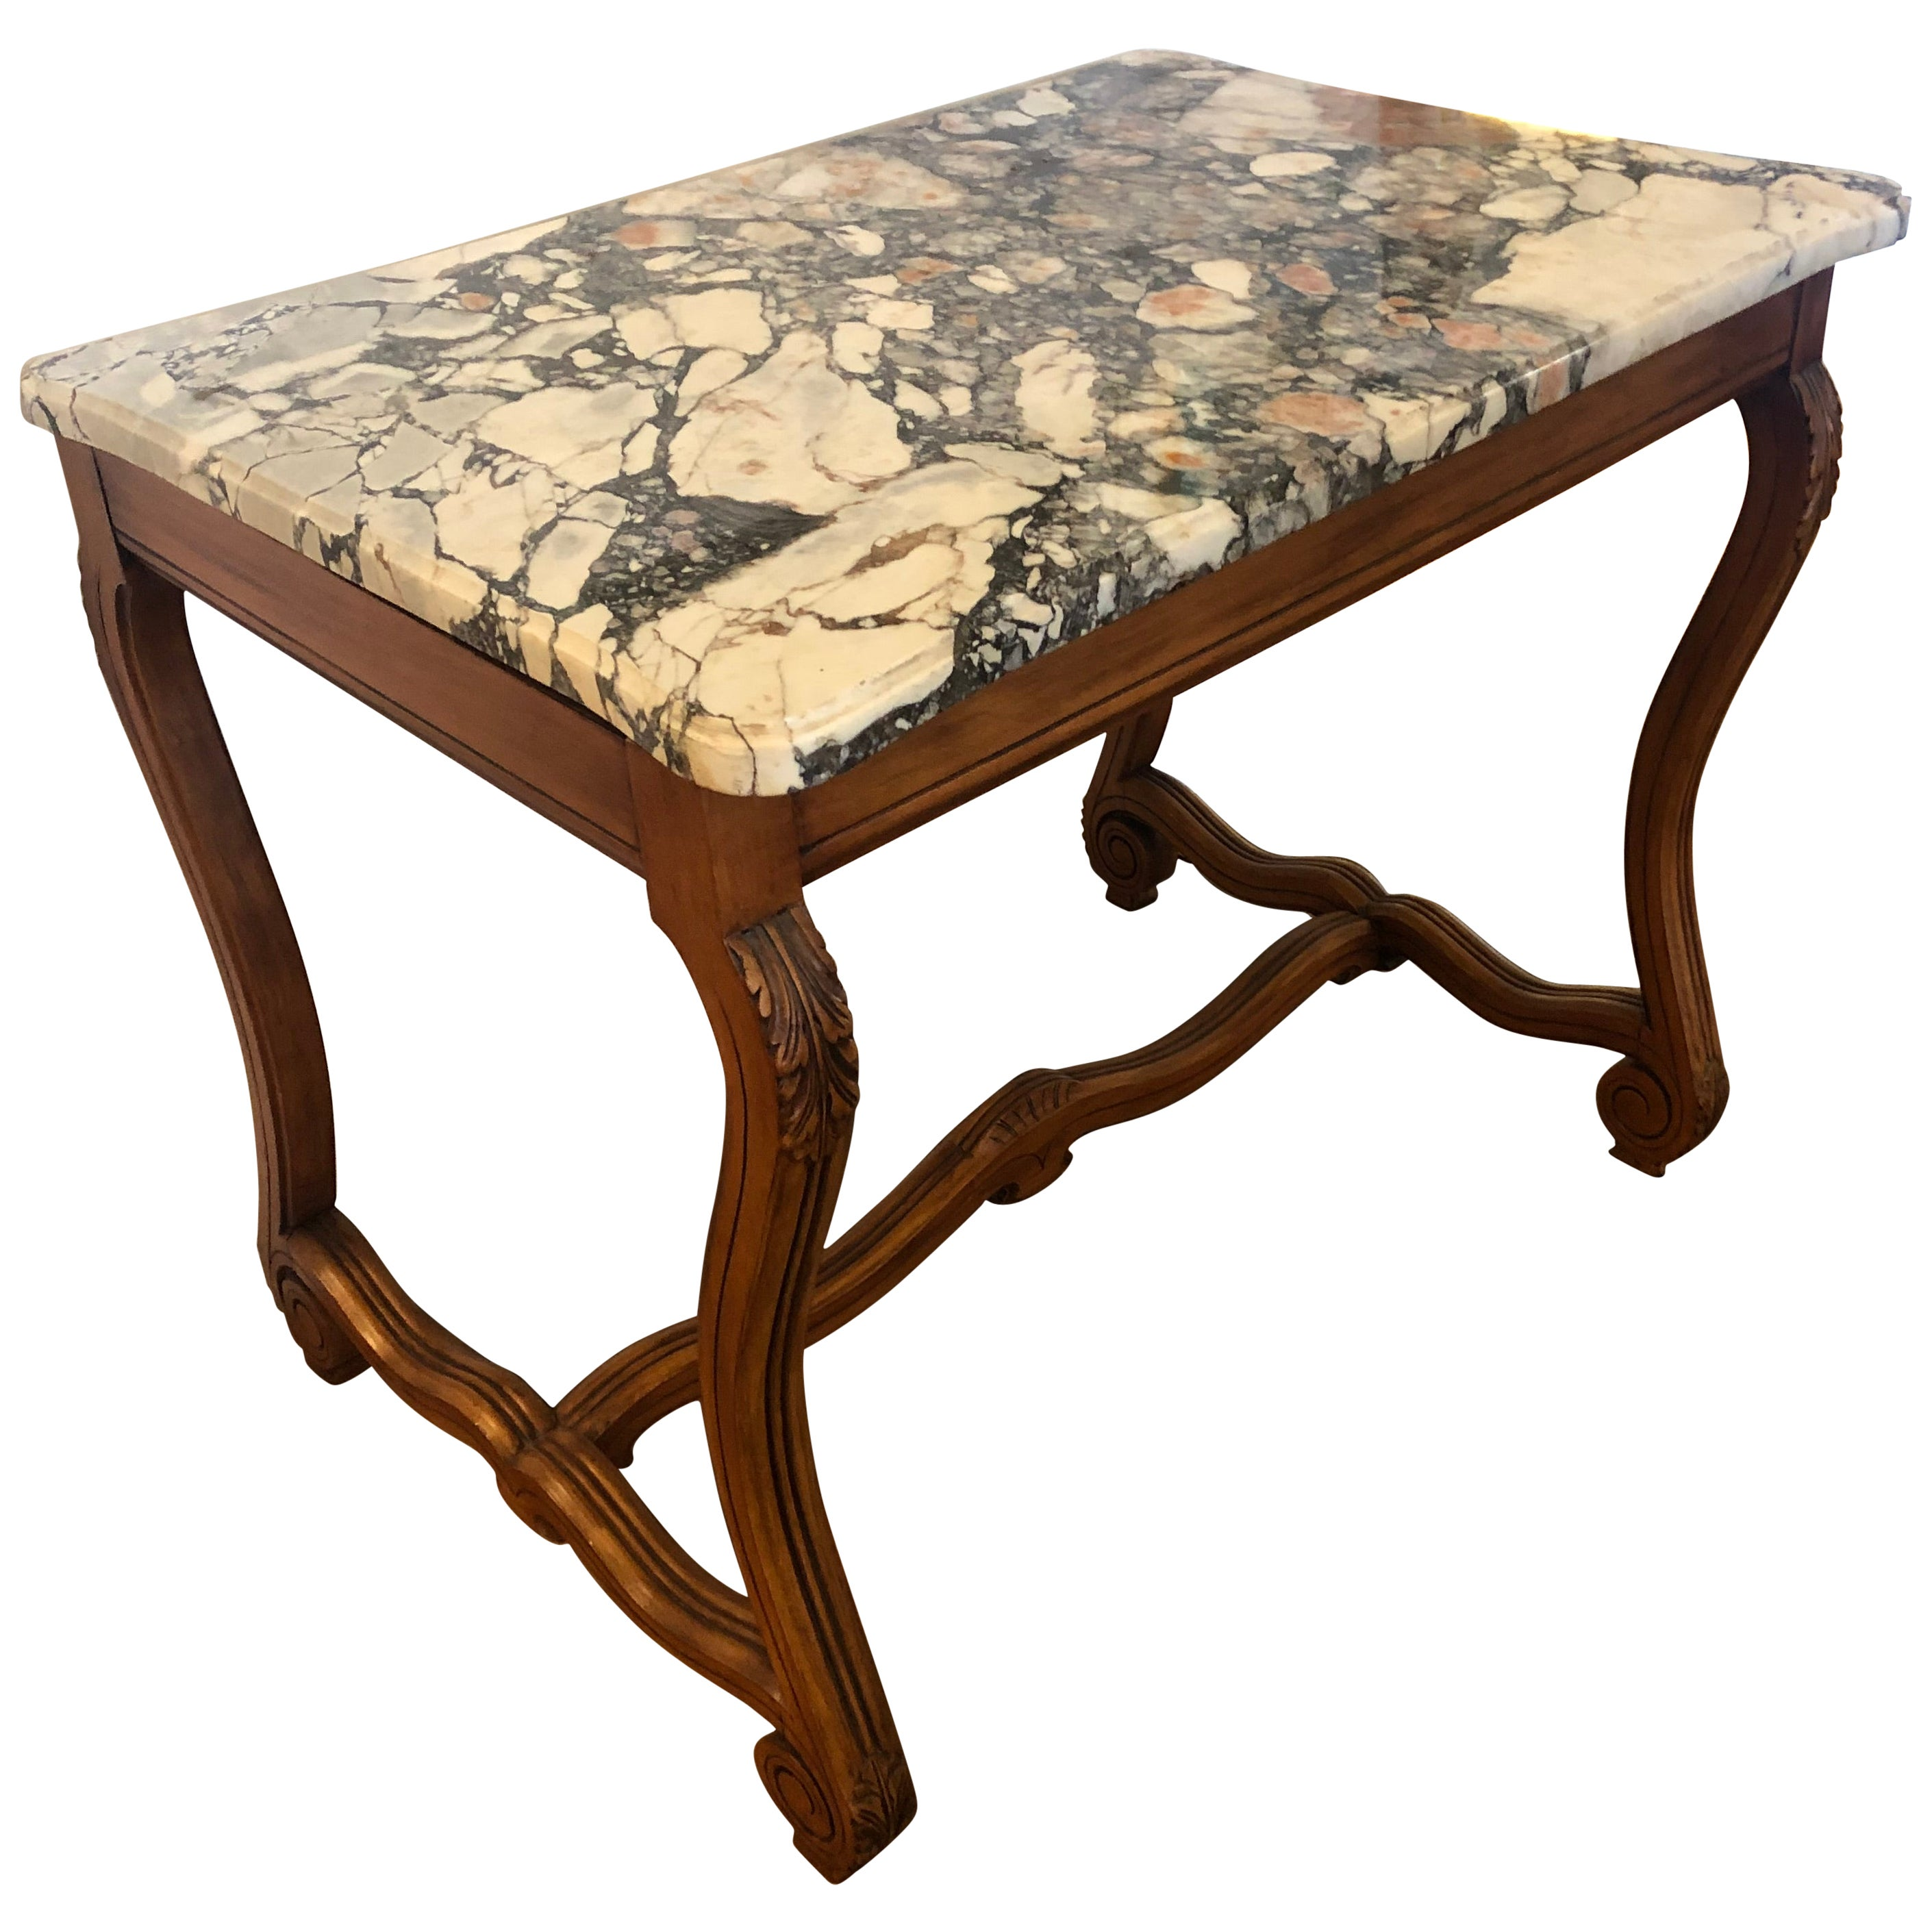 Versatile French Walnut and Marble Center Table Writing Desk